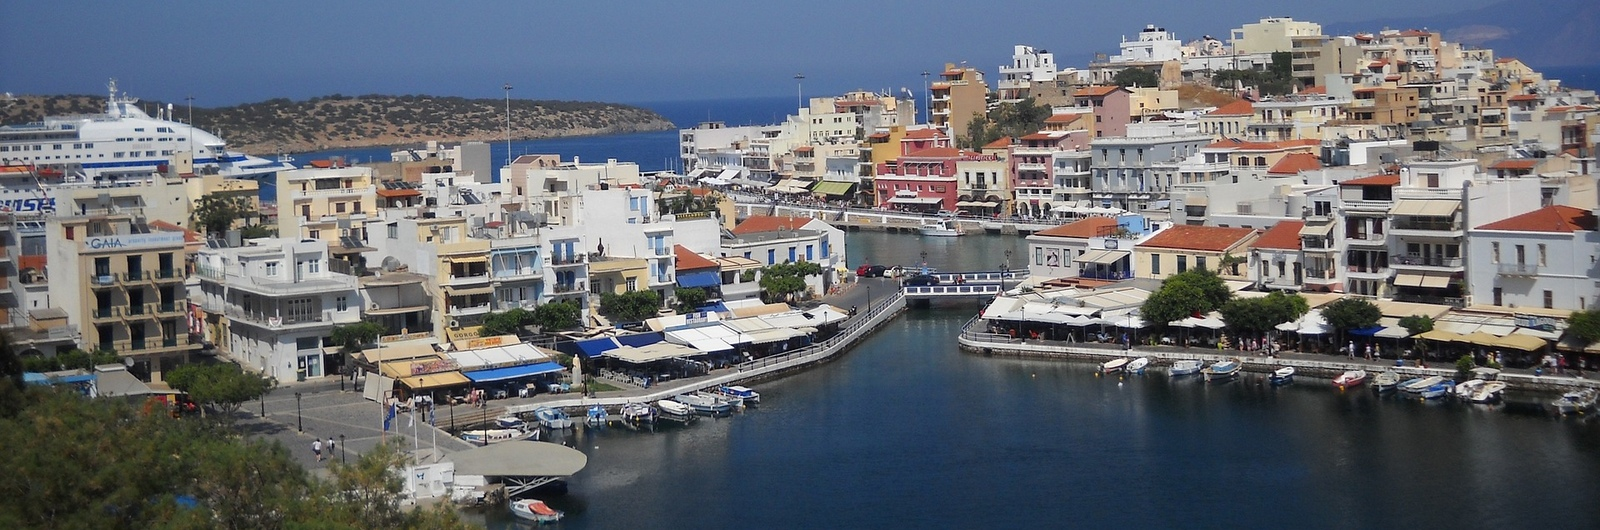 agiosnikolaos city header